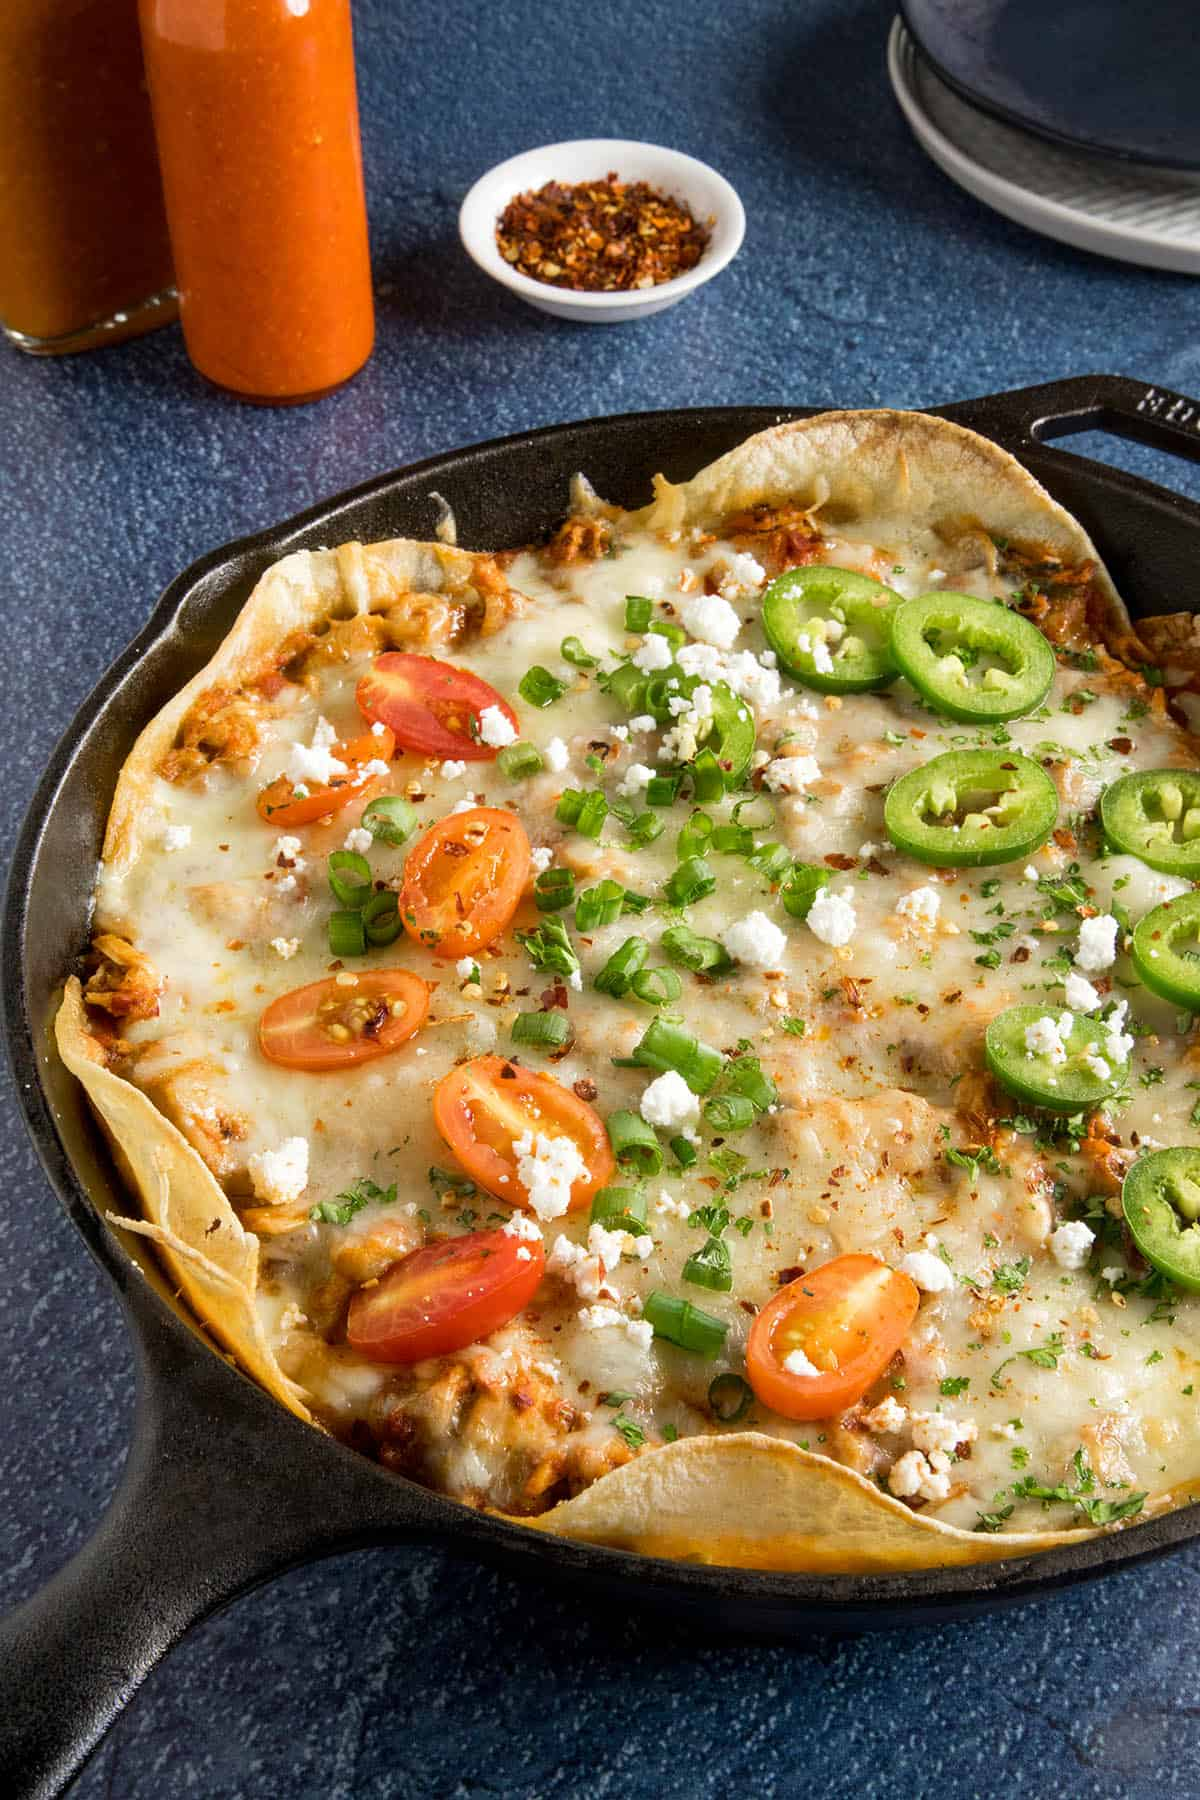 Chipotle Chicken Enchilada Casserole